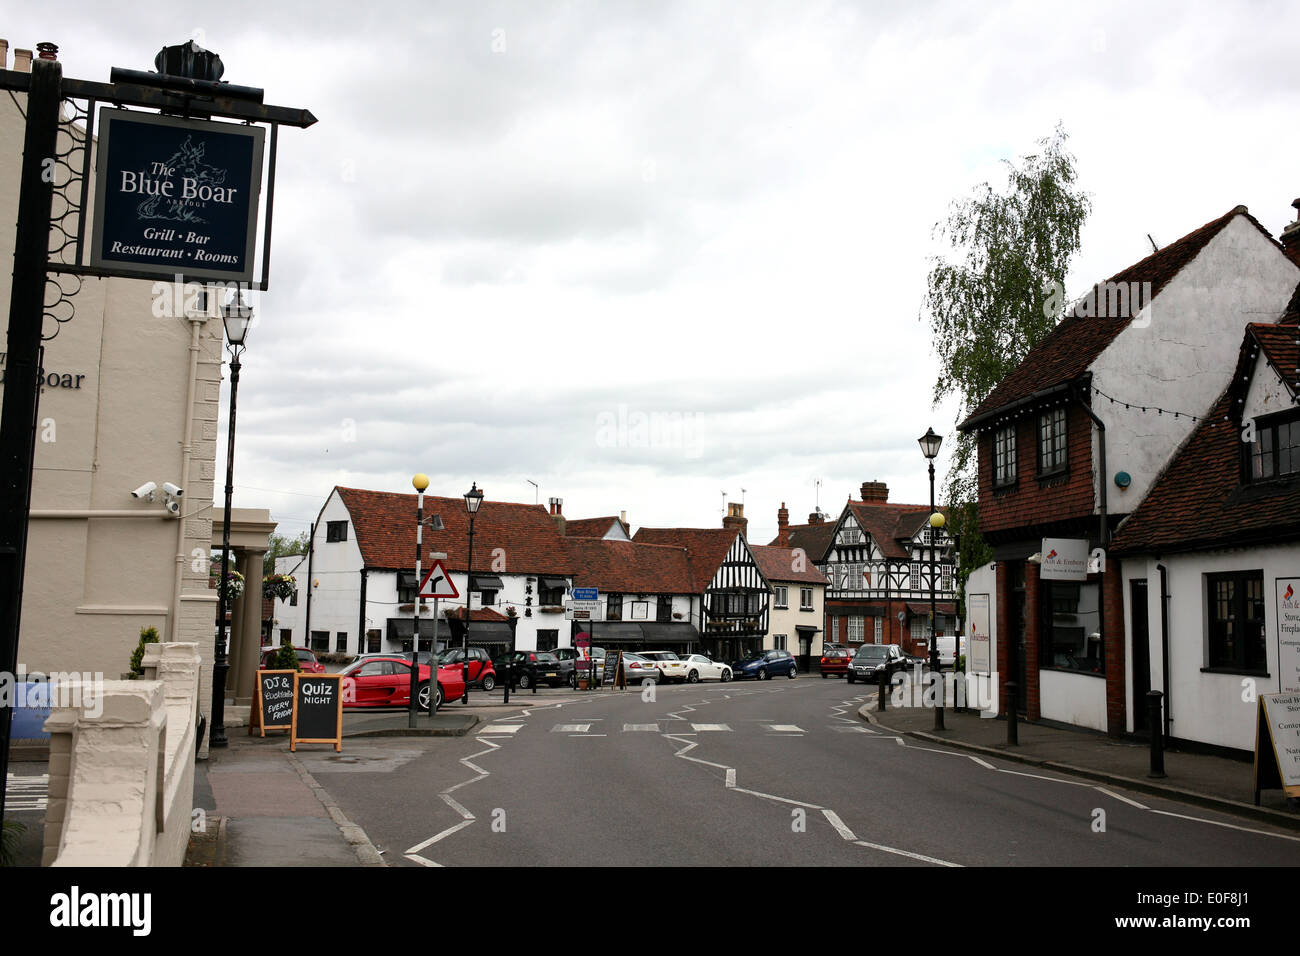 the village of abridge in county of essex uk 2014 - Stock Image